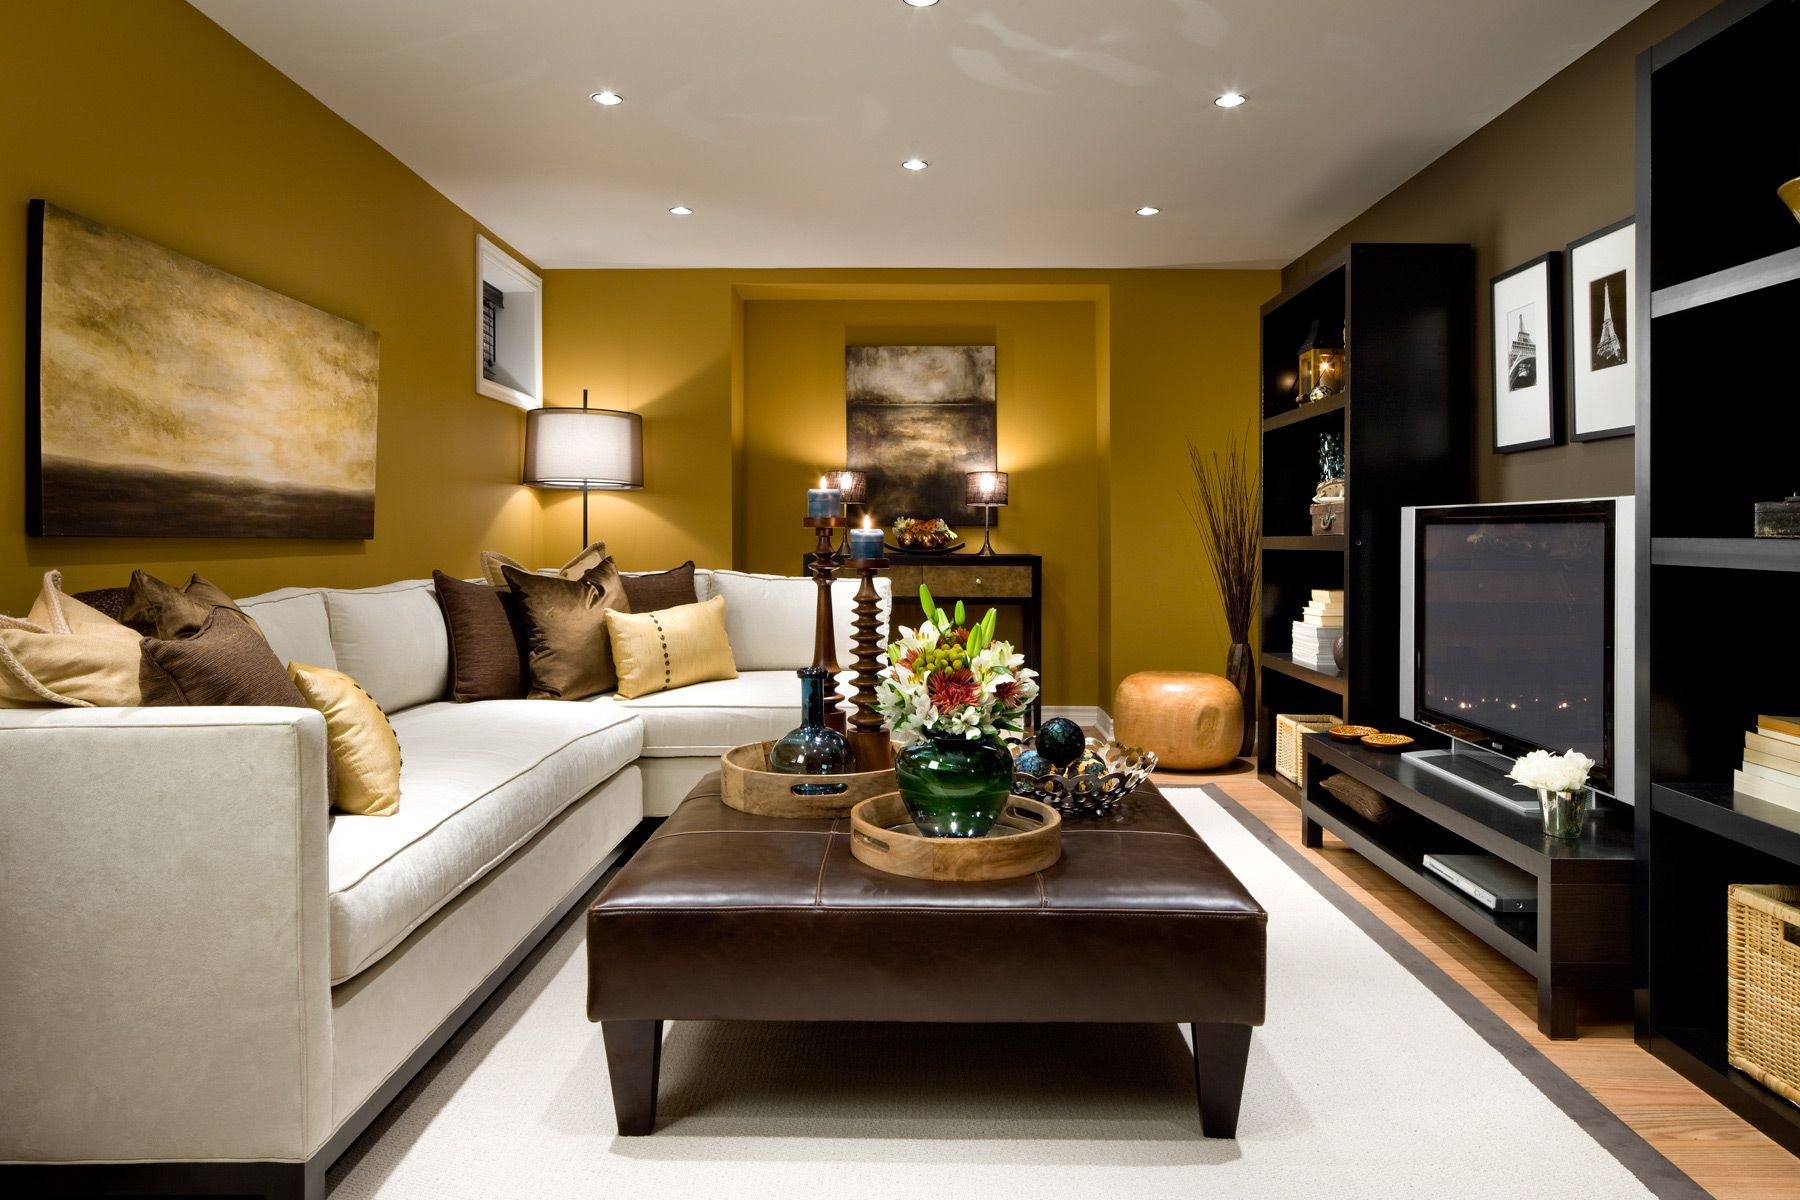 A Small And Cozy Living Room With A Slipcovered Sofa In Cream And